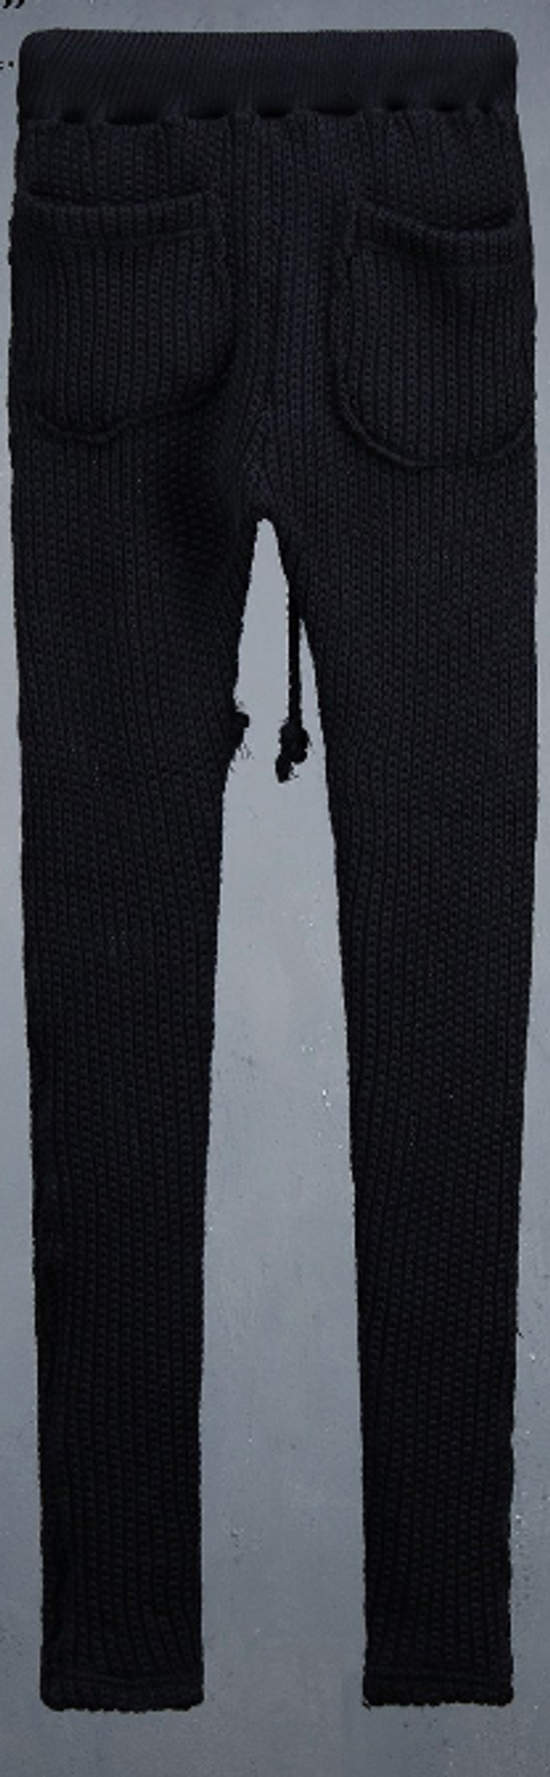 Julius Byther - black julius knit pants - like thom krom, boris bidjan saberi, silent damir doma, rick owens Size US 32 / EU 48 - 7